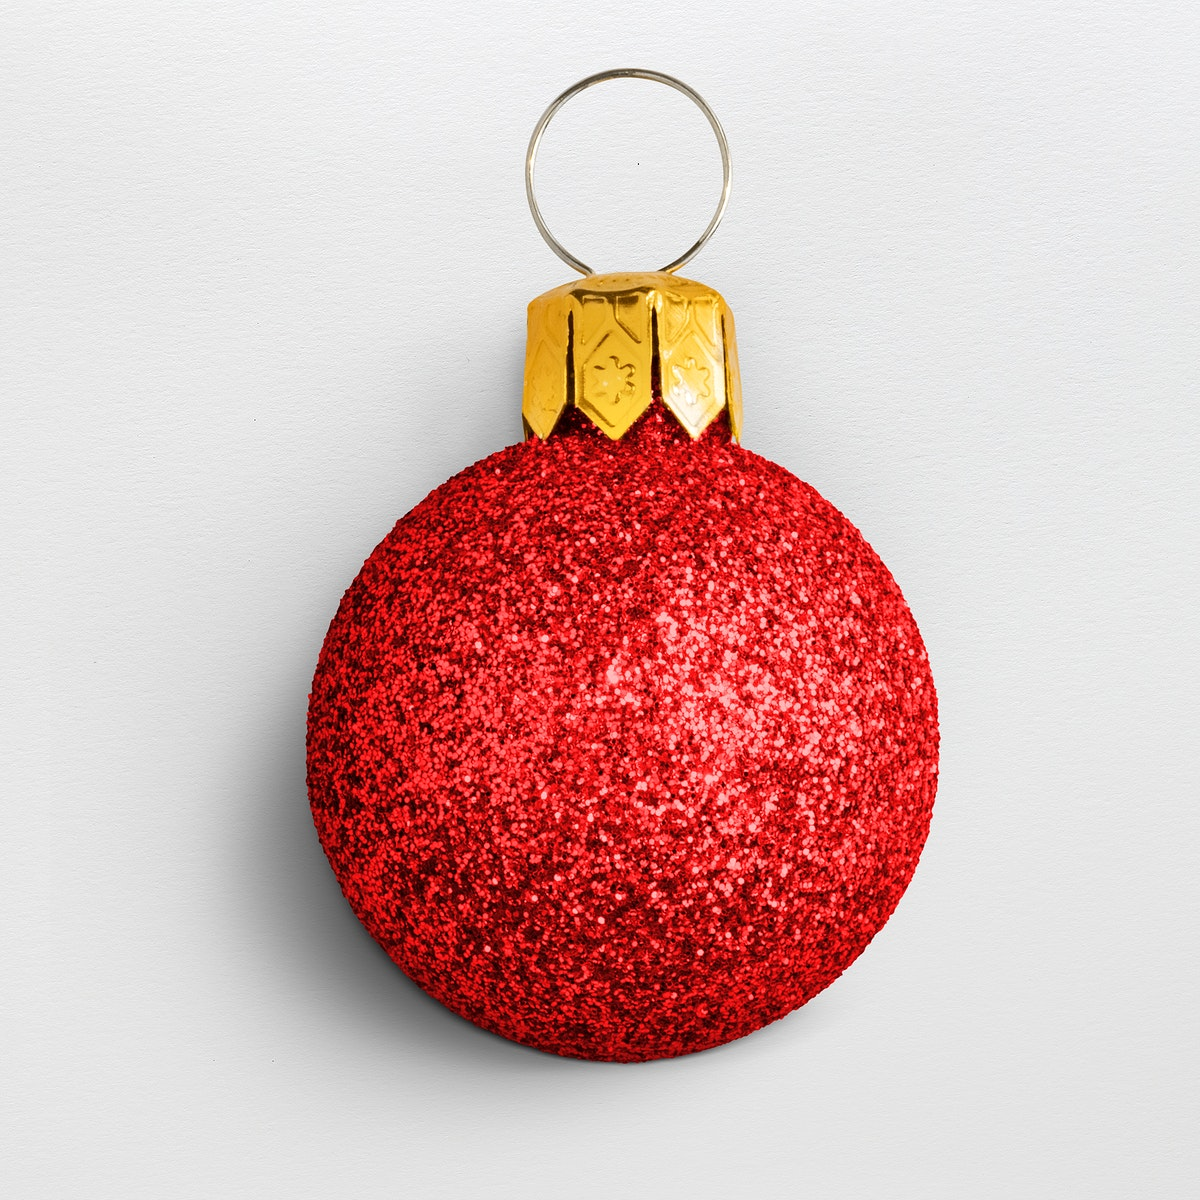 A glitter red ball Christmas ornament isolated on gray background